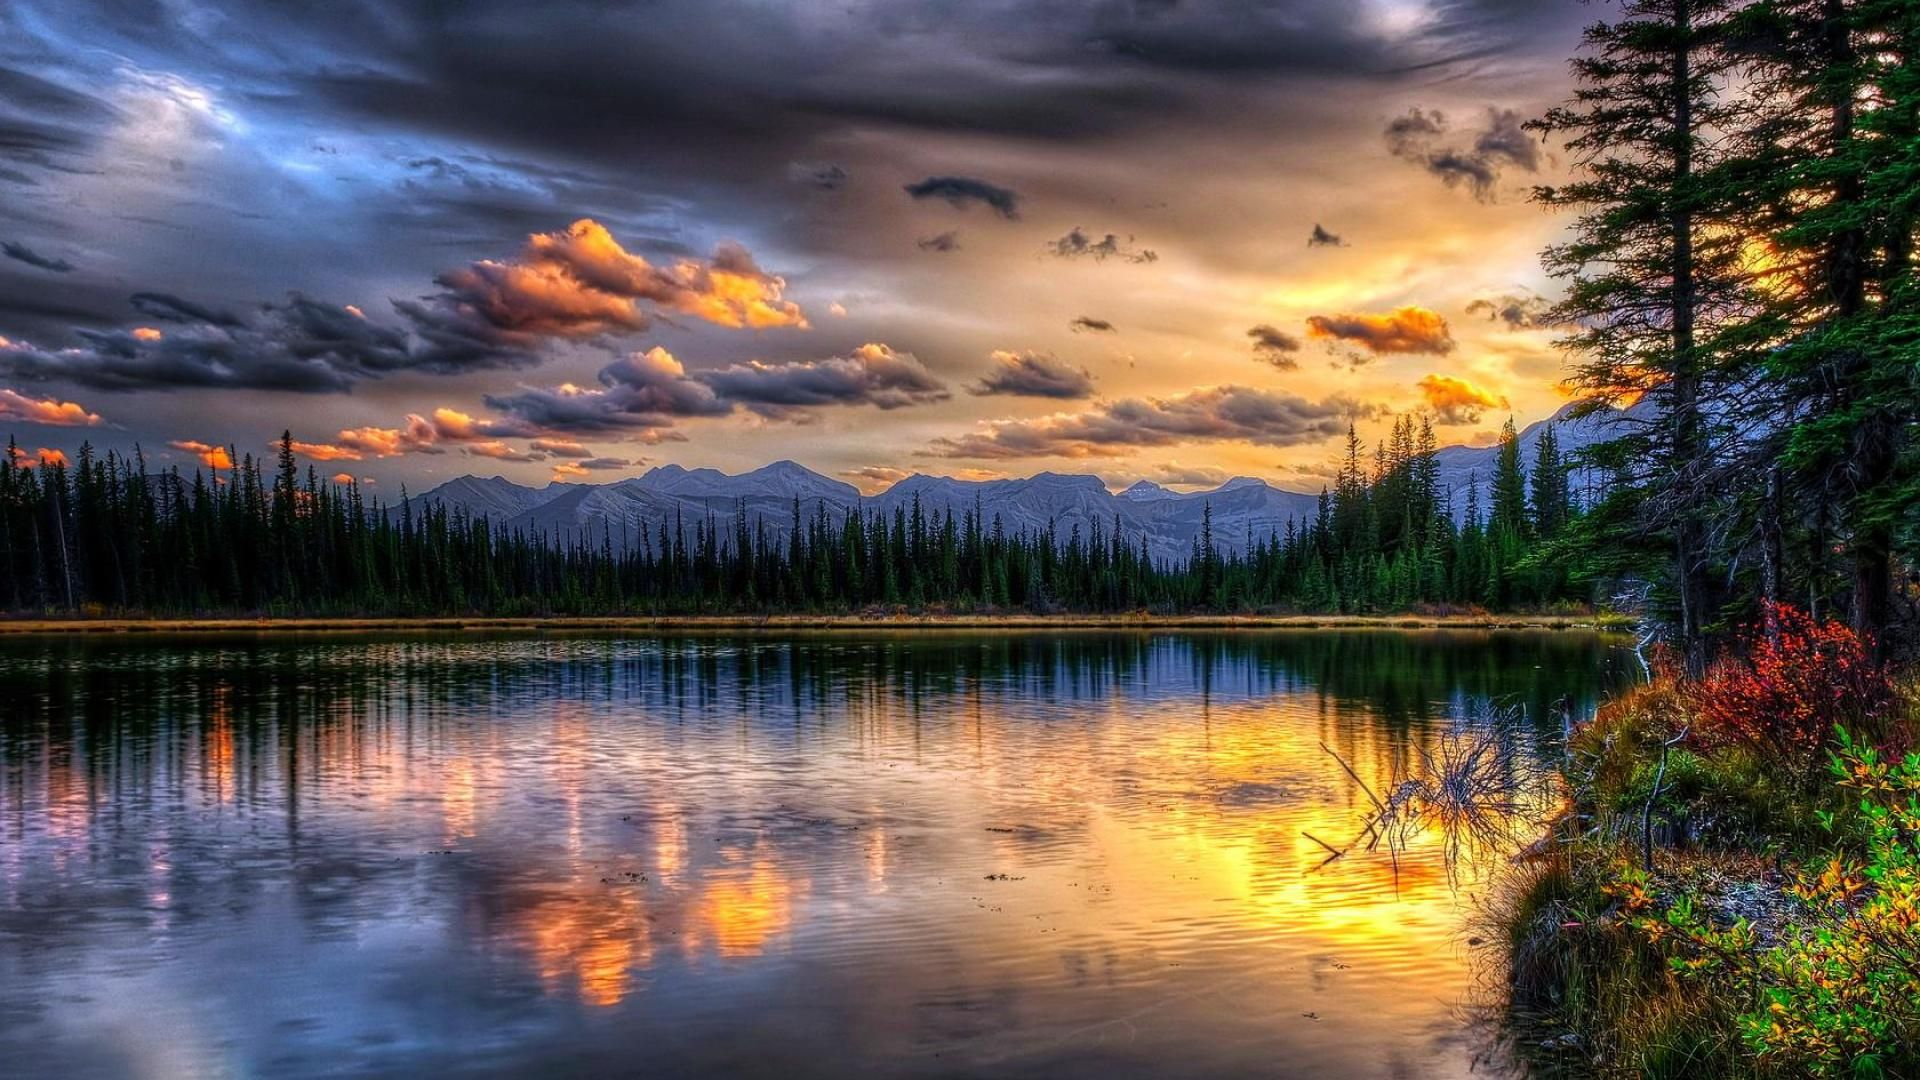 The Beauty In Life Beautiful Landscape Pictures Beautiful Landscape Wallpaper Landscape Pictures